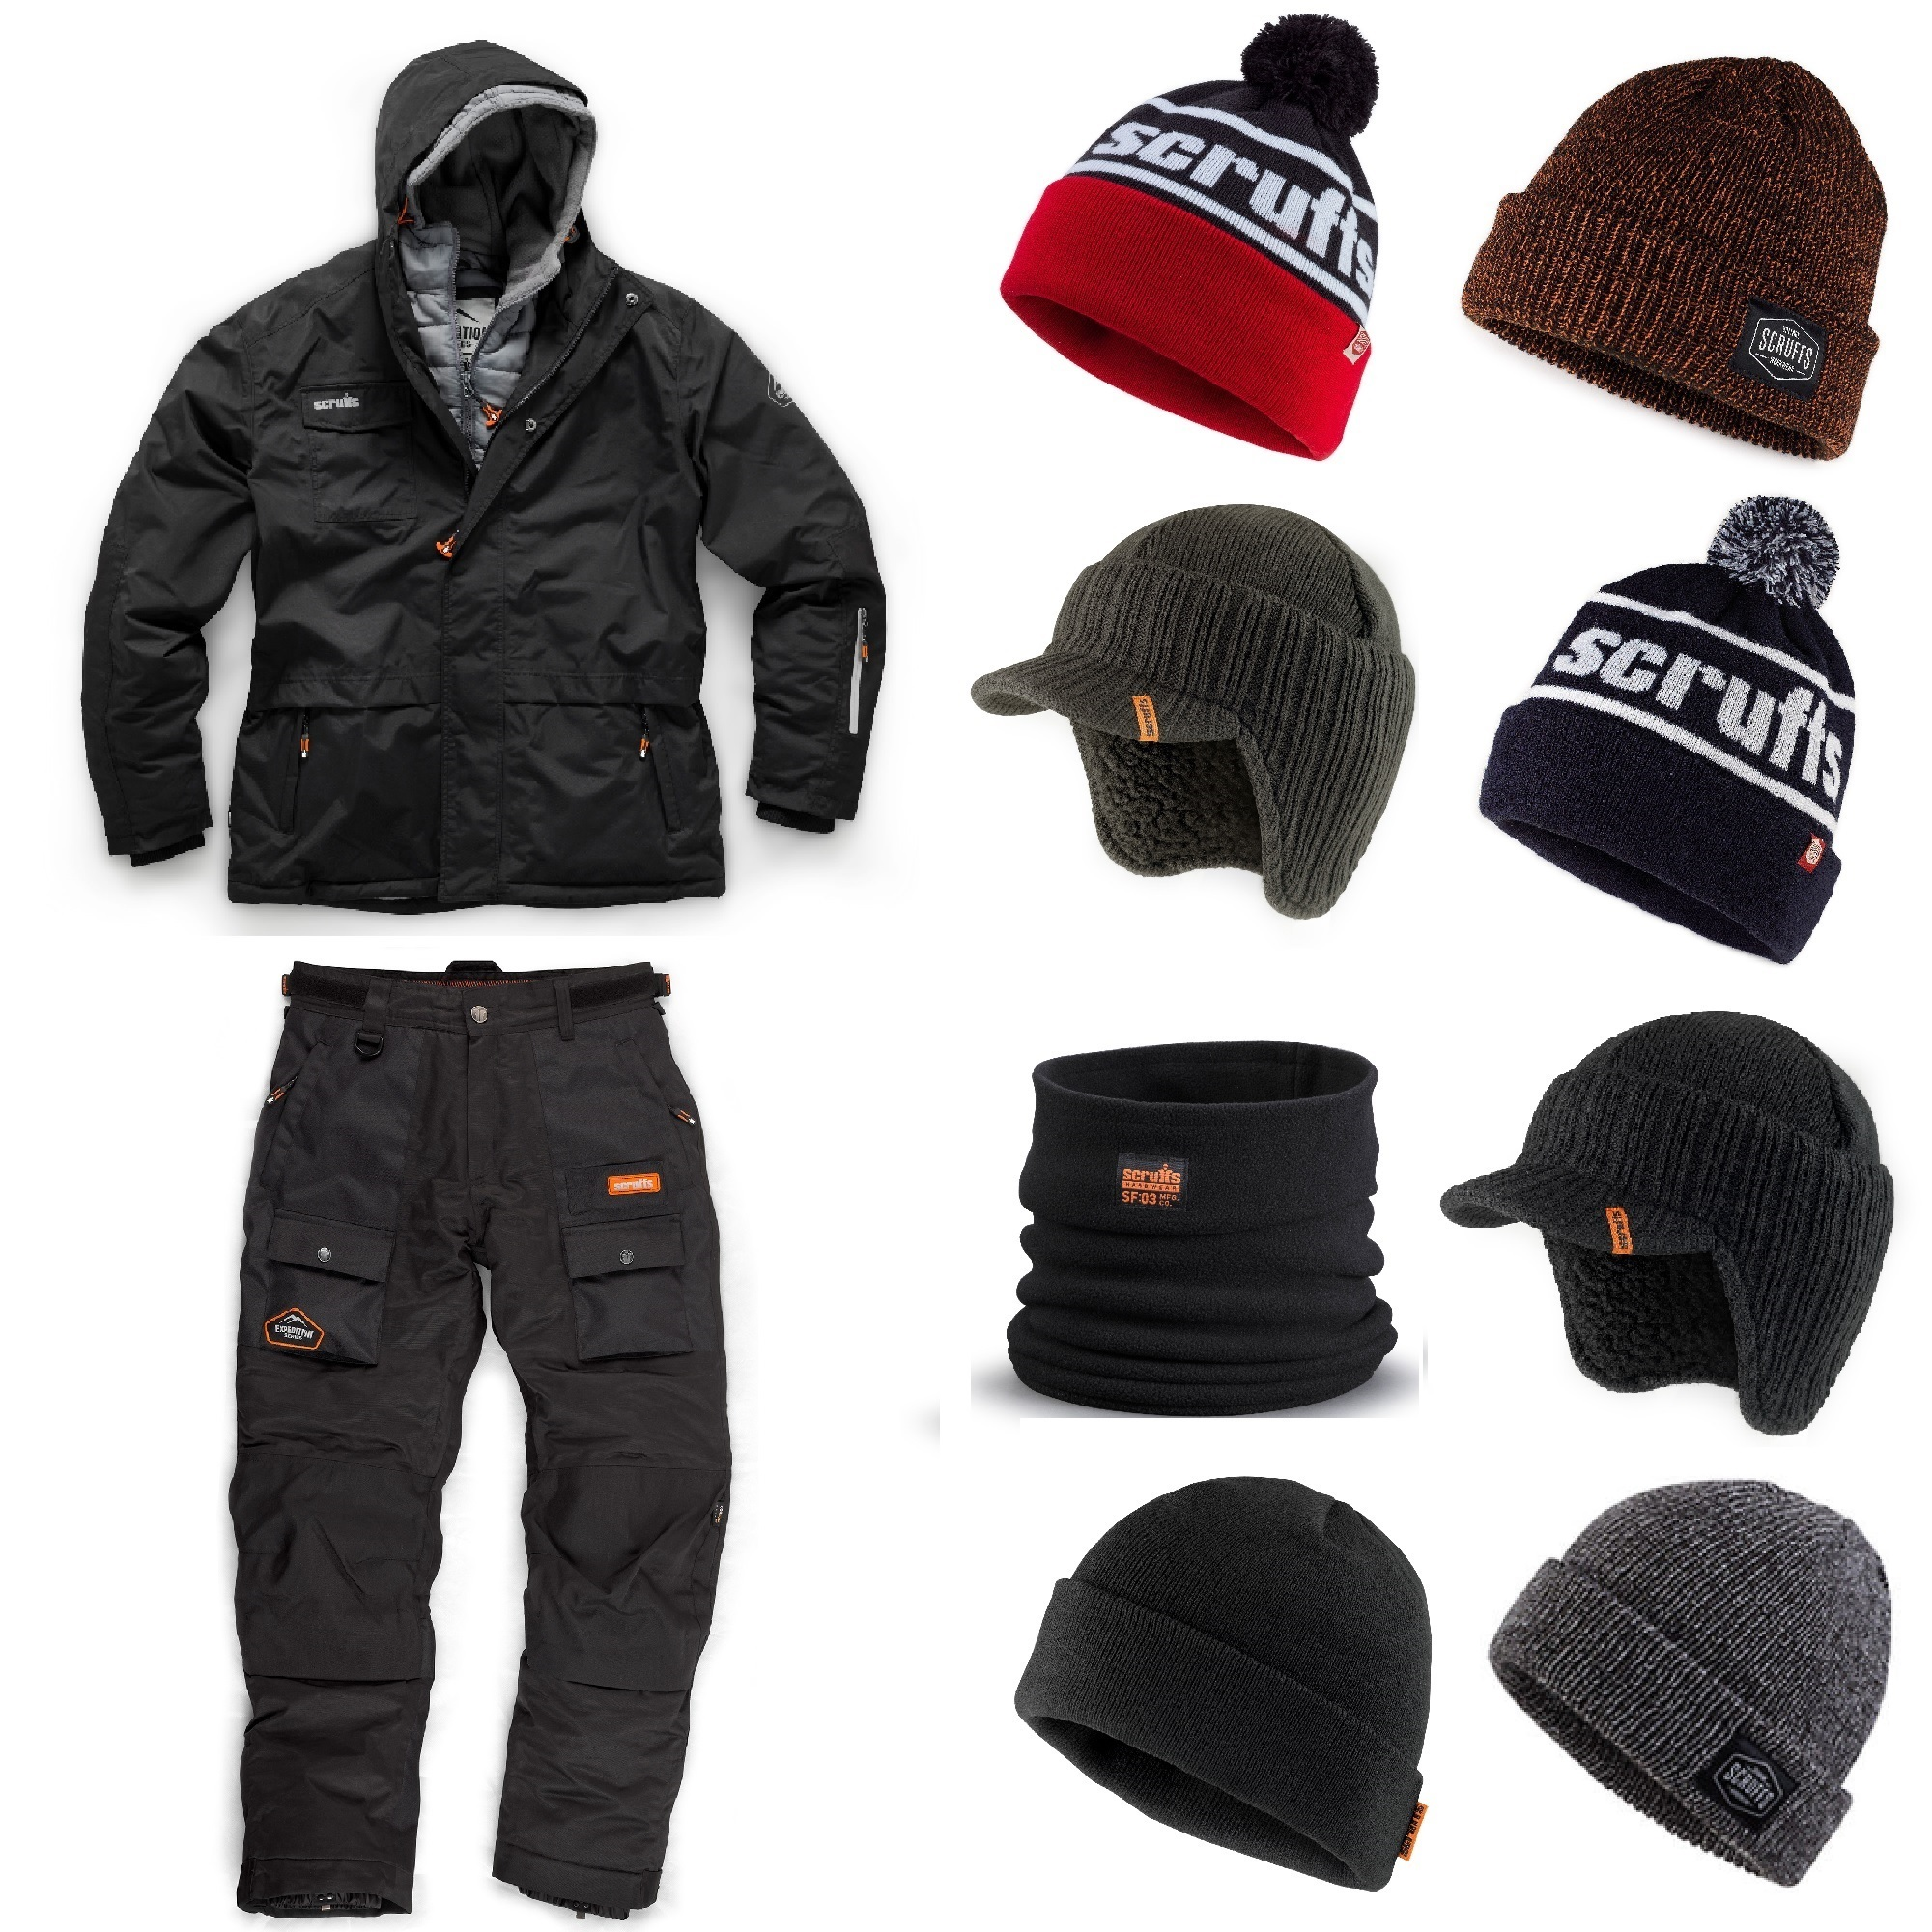 Scruffs double zip jacket, Scruffs thermo trousers and a selection of Scruffs knitted winter hats and a black Scruffs snood